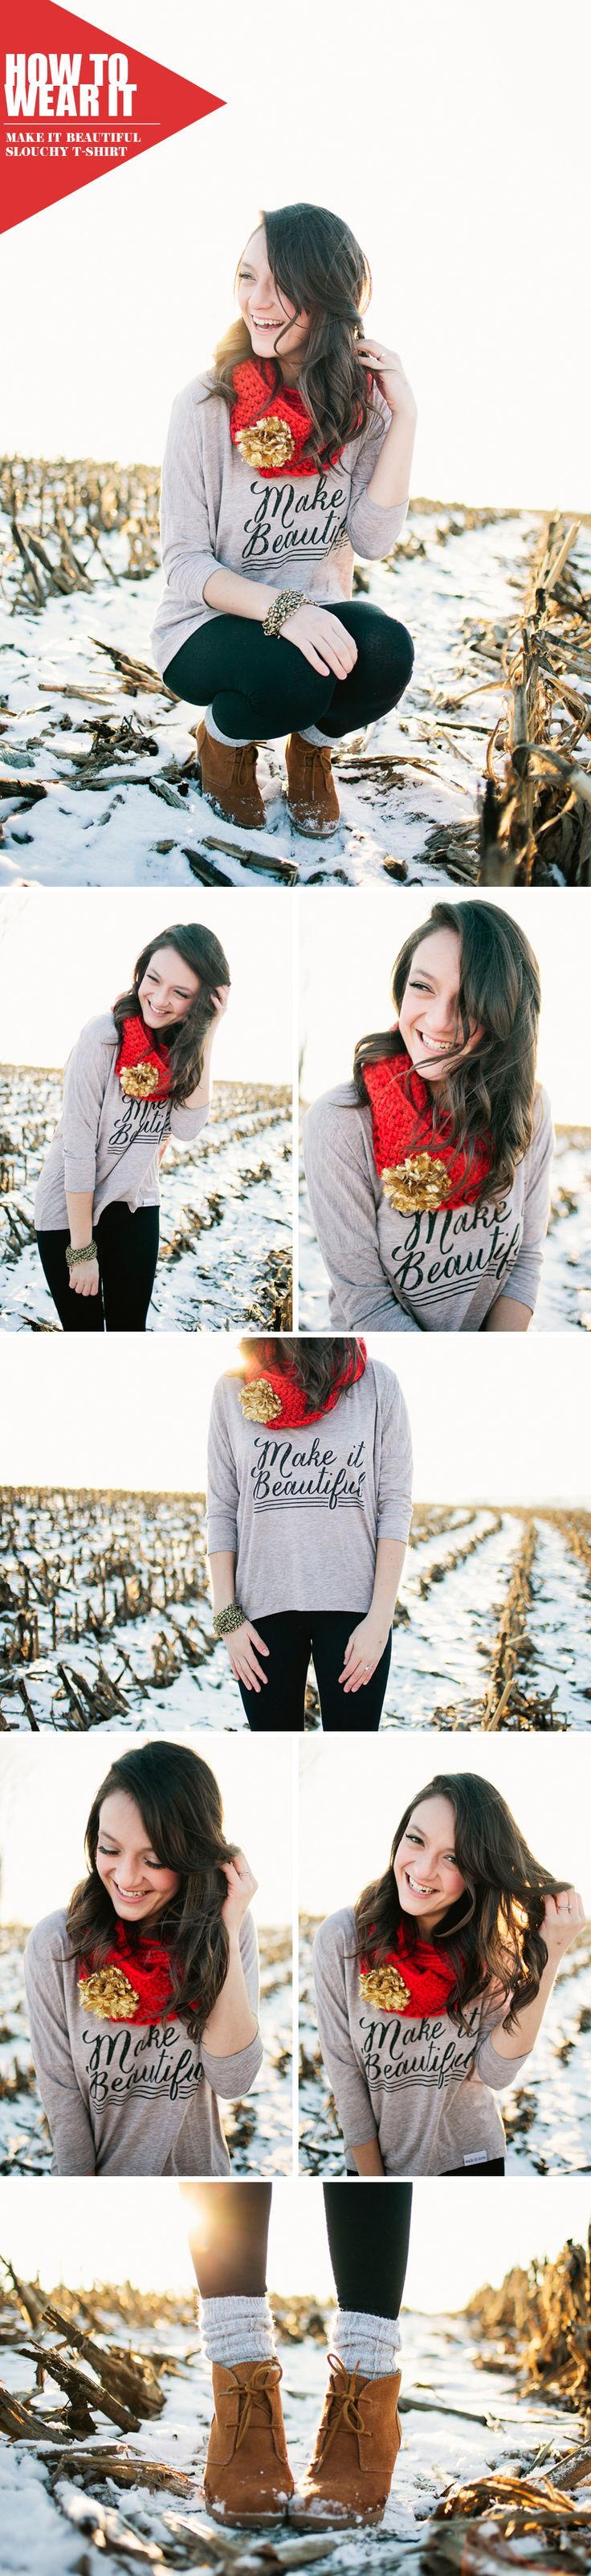 walk in love. // Make It Beautiful Slouchy T-Shirt // Ban.do // Boots // Knit Infinity Scarf // Outfit Inspiration